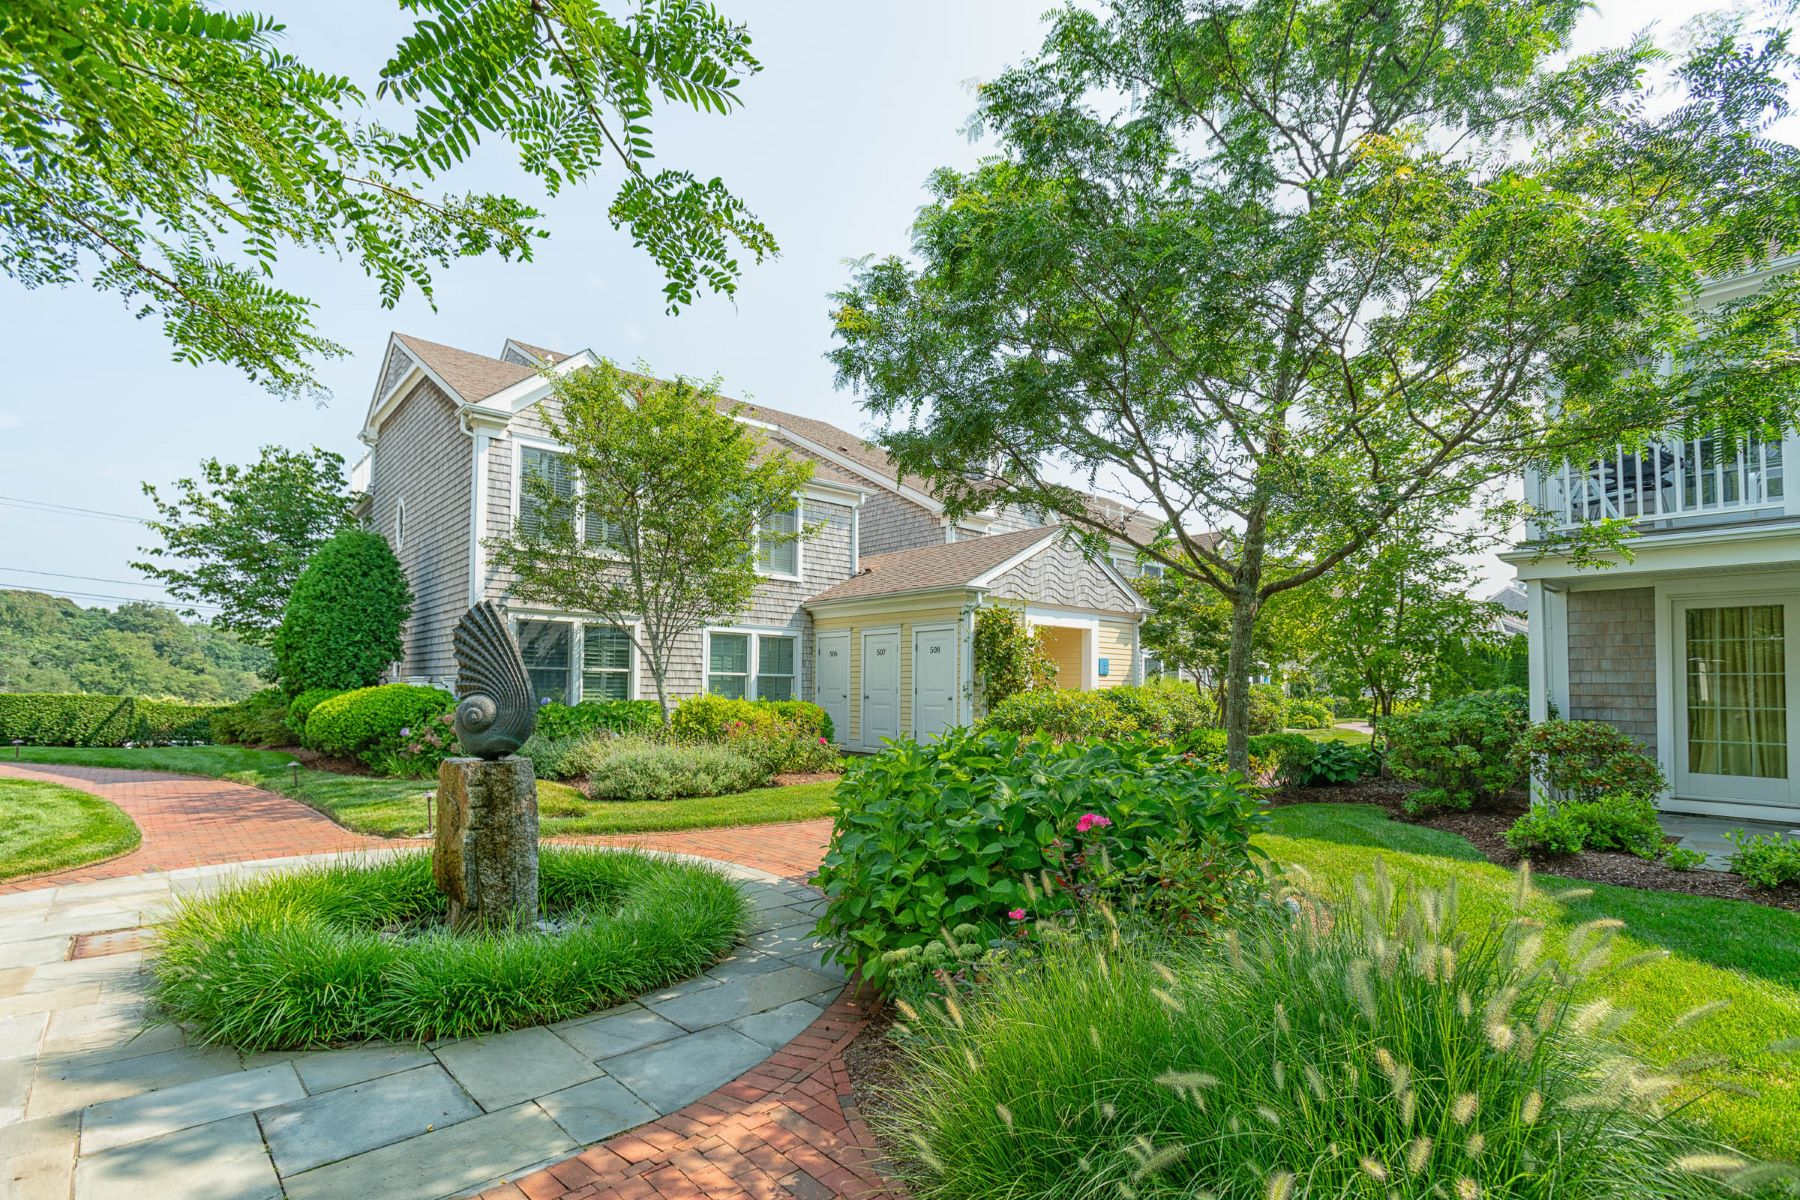 condominiums for Sale at 20 Narragansett Av, #507, Narragansett, RI 20 Narragansett Av 507, Narragansett, Rhode Island 02882 United States